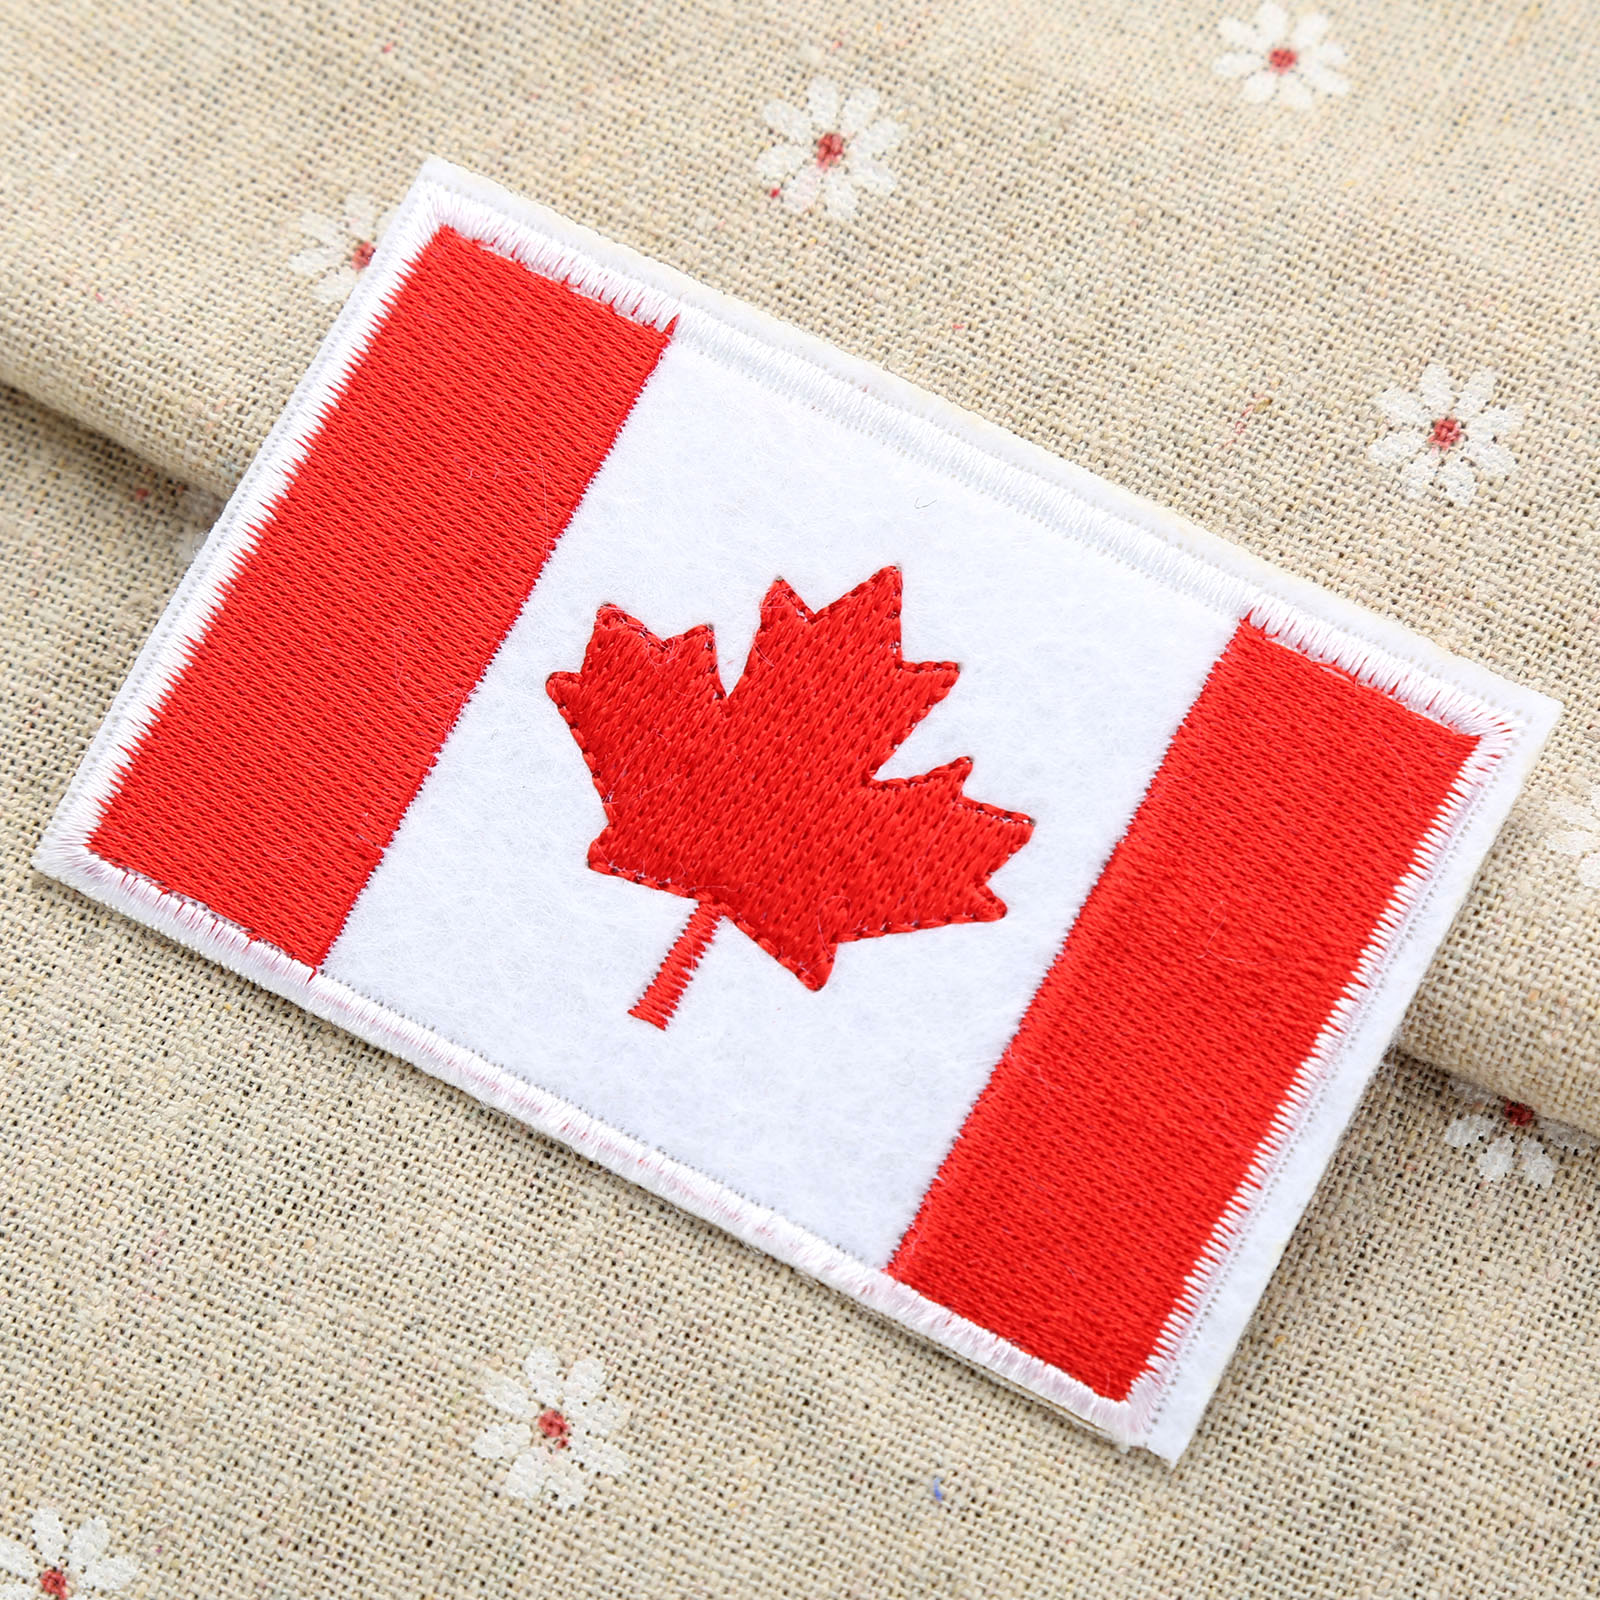 New CANADIAN FLAG PATCH Embroidered 6 cm x 3.5 cm Iron On Canada Flag Patch